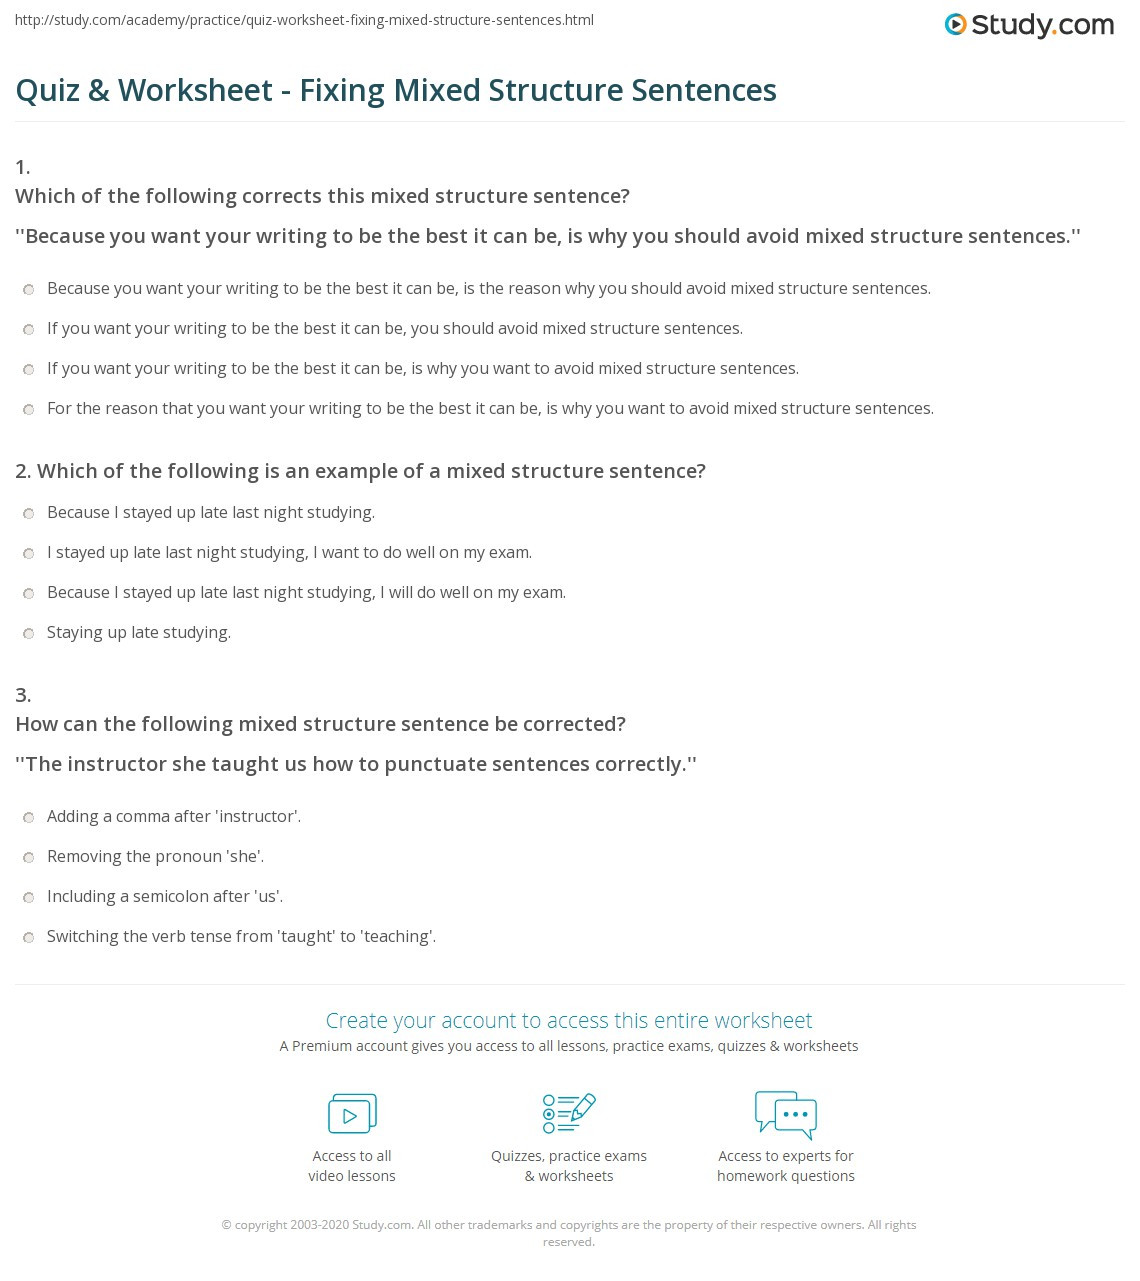 Free Printable Sentence Structure Worksheets Quiz & Worksheet Fixing Mixed Structure Sentences